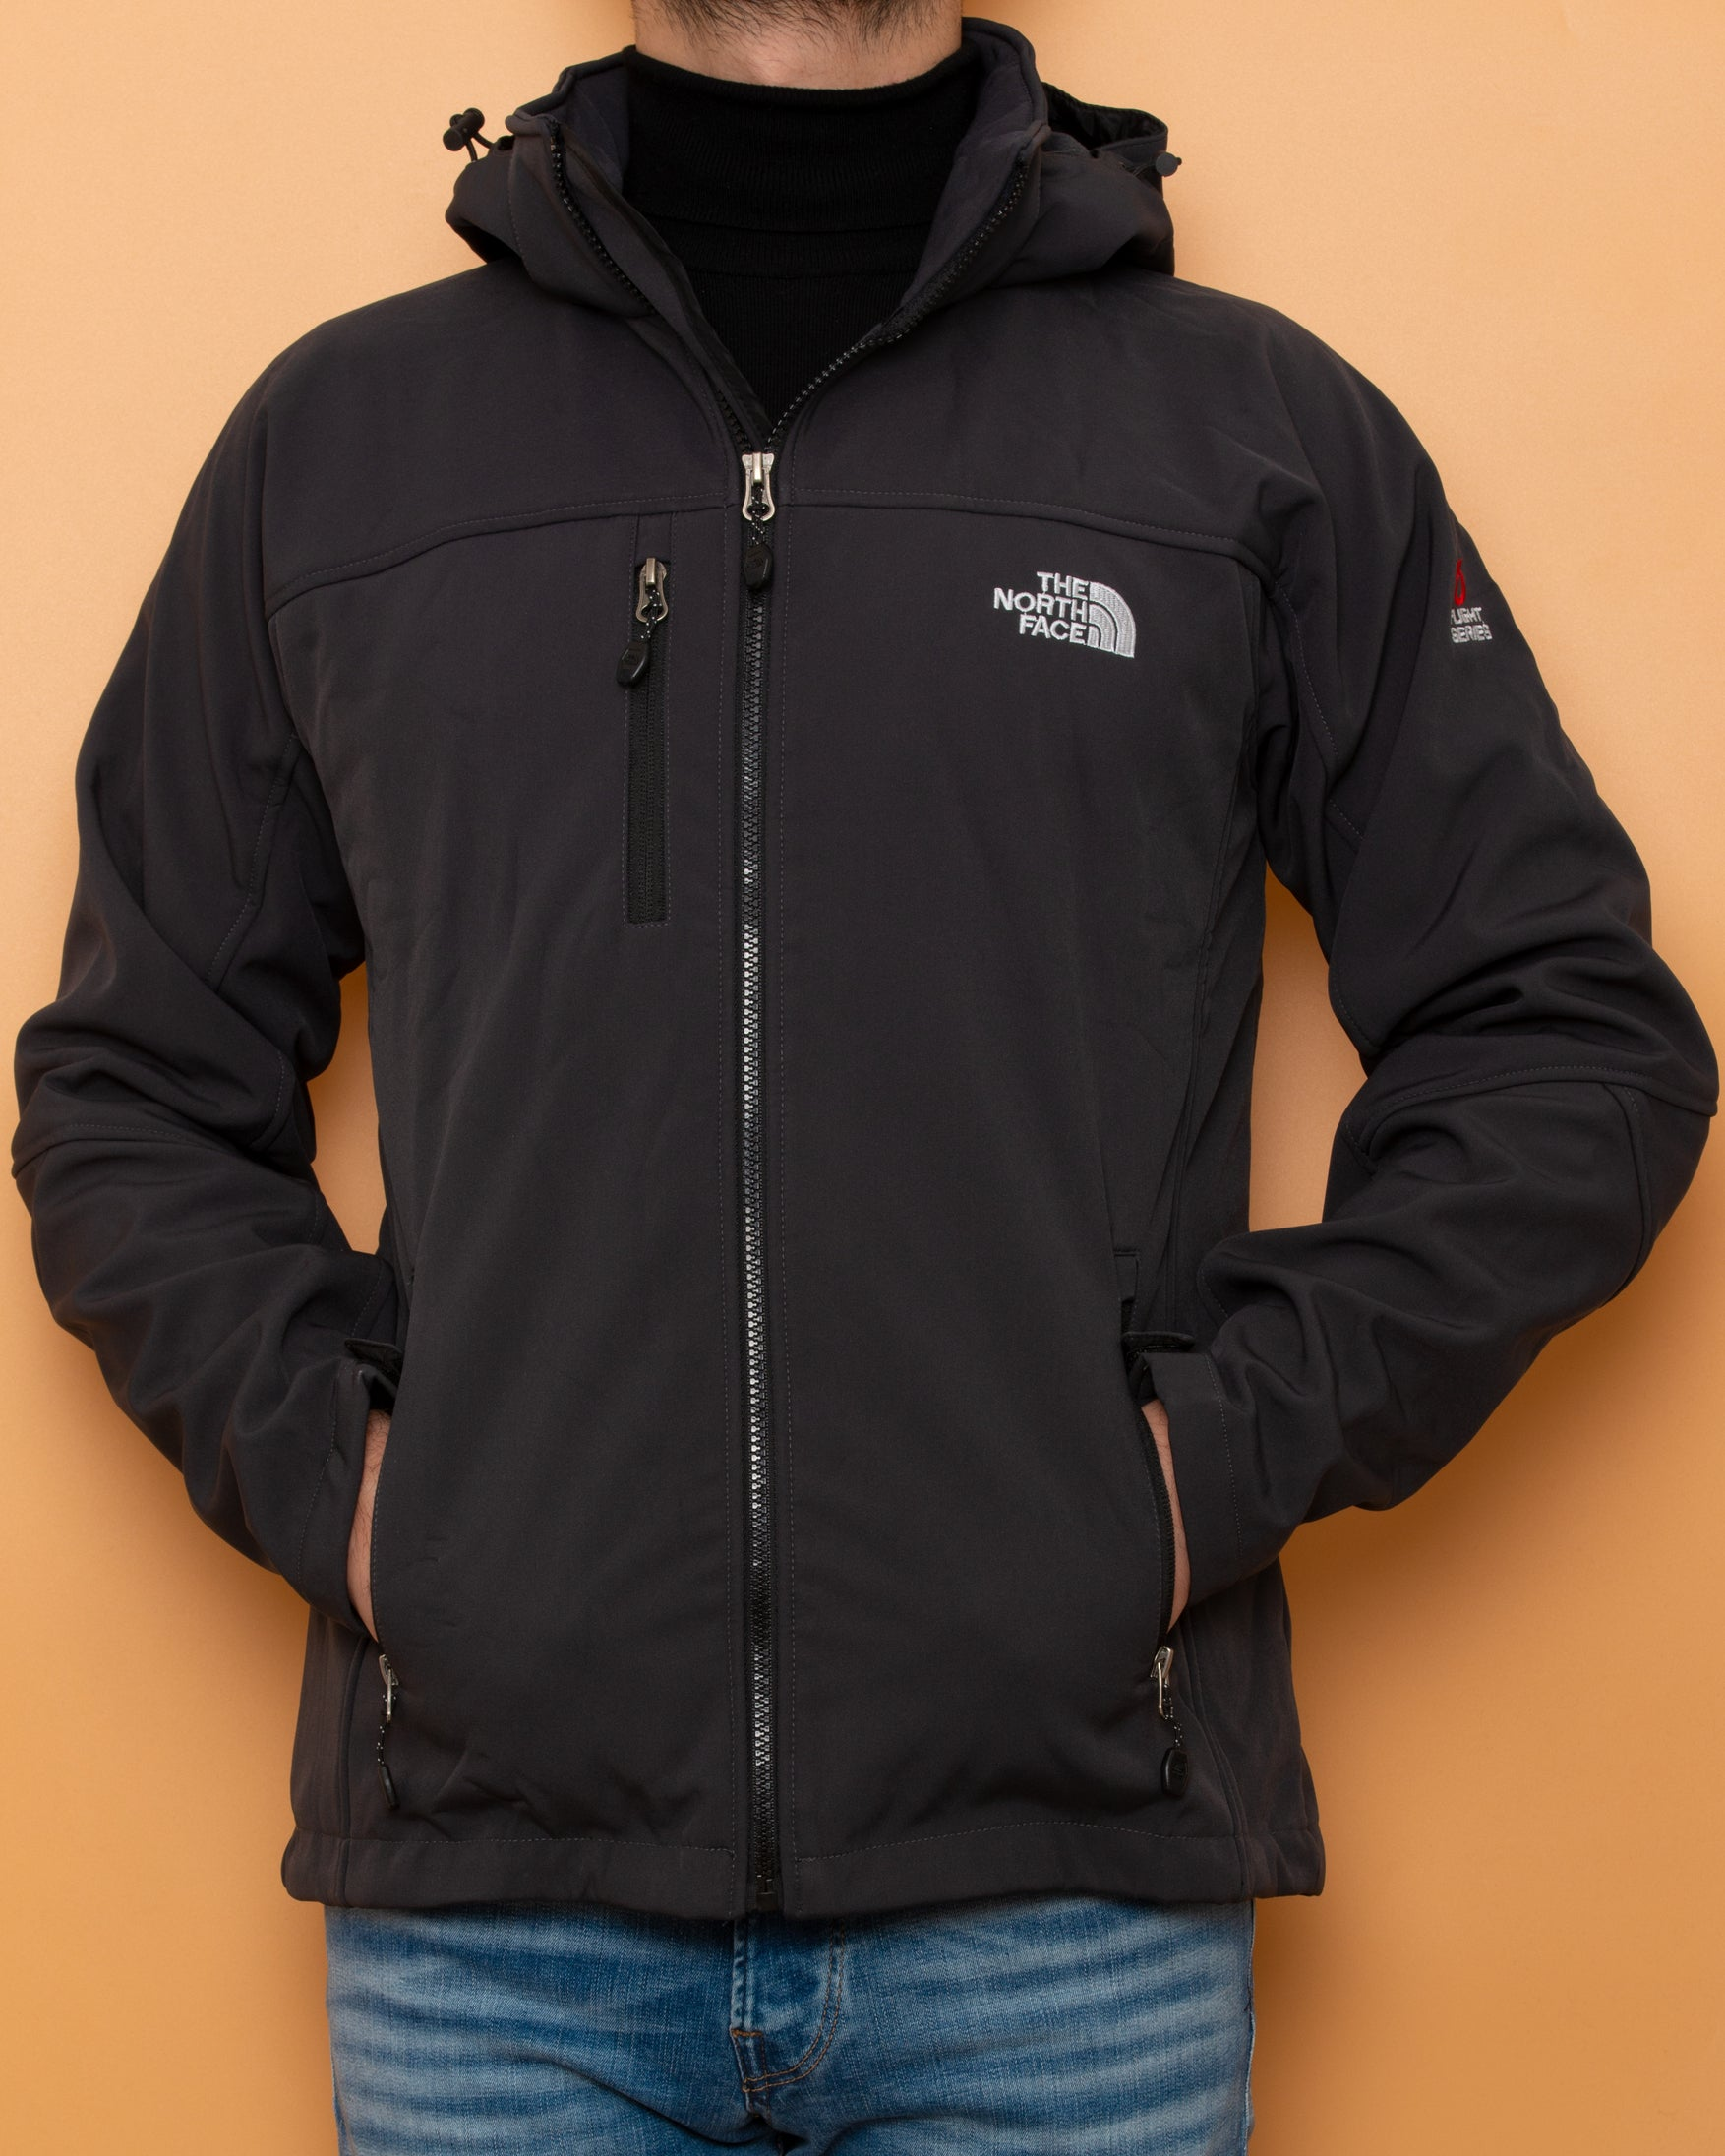 The North Face Jacket Dark Olive